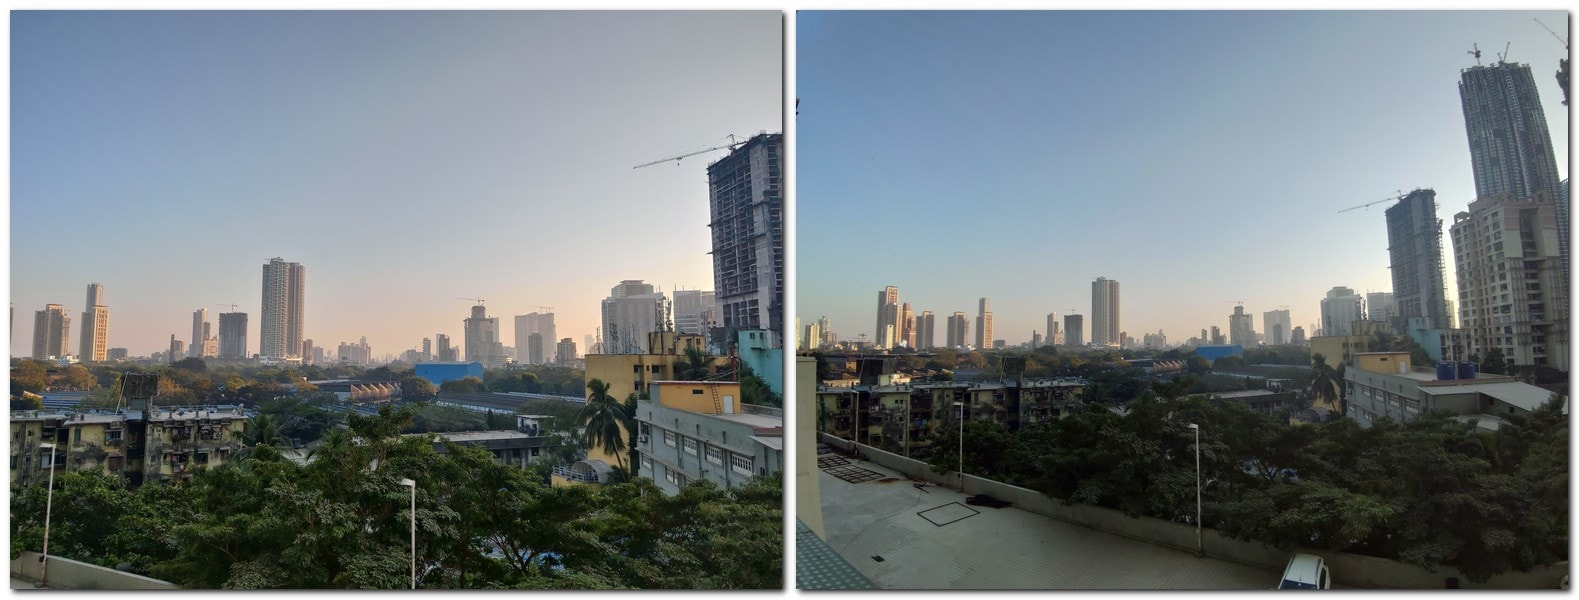 Normal photo (L) vs Wide Angle photo (R)